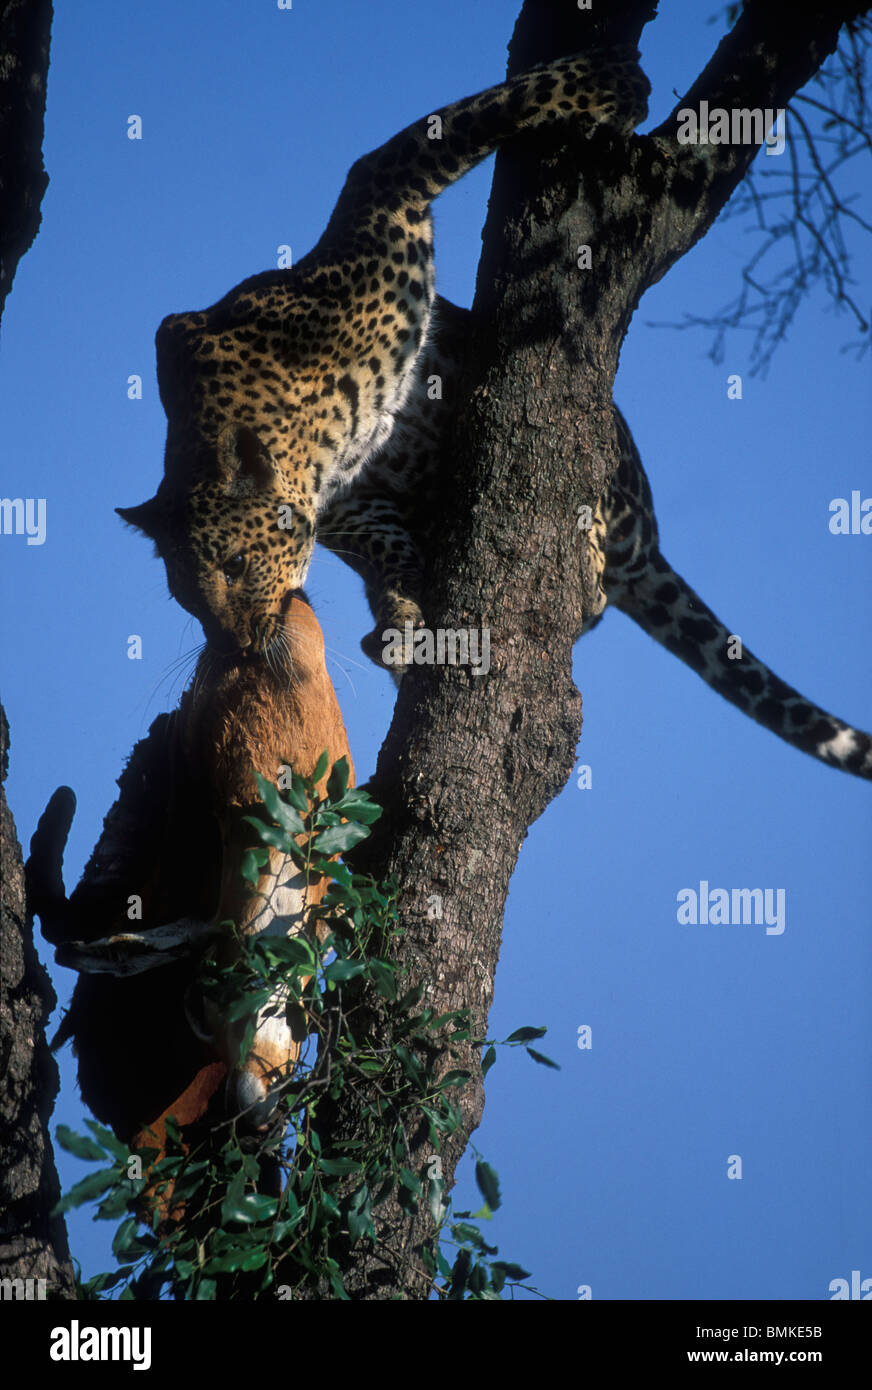 Africa, Kenya, Masai Mara Game Reserve, Adult Female Leopard (Panthera pardus) carries Impala kill down from tree Stock Photo